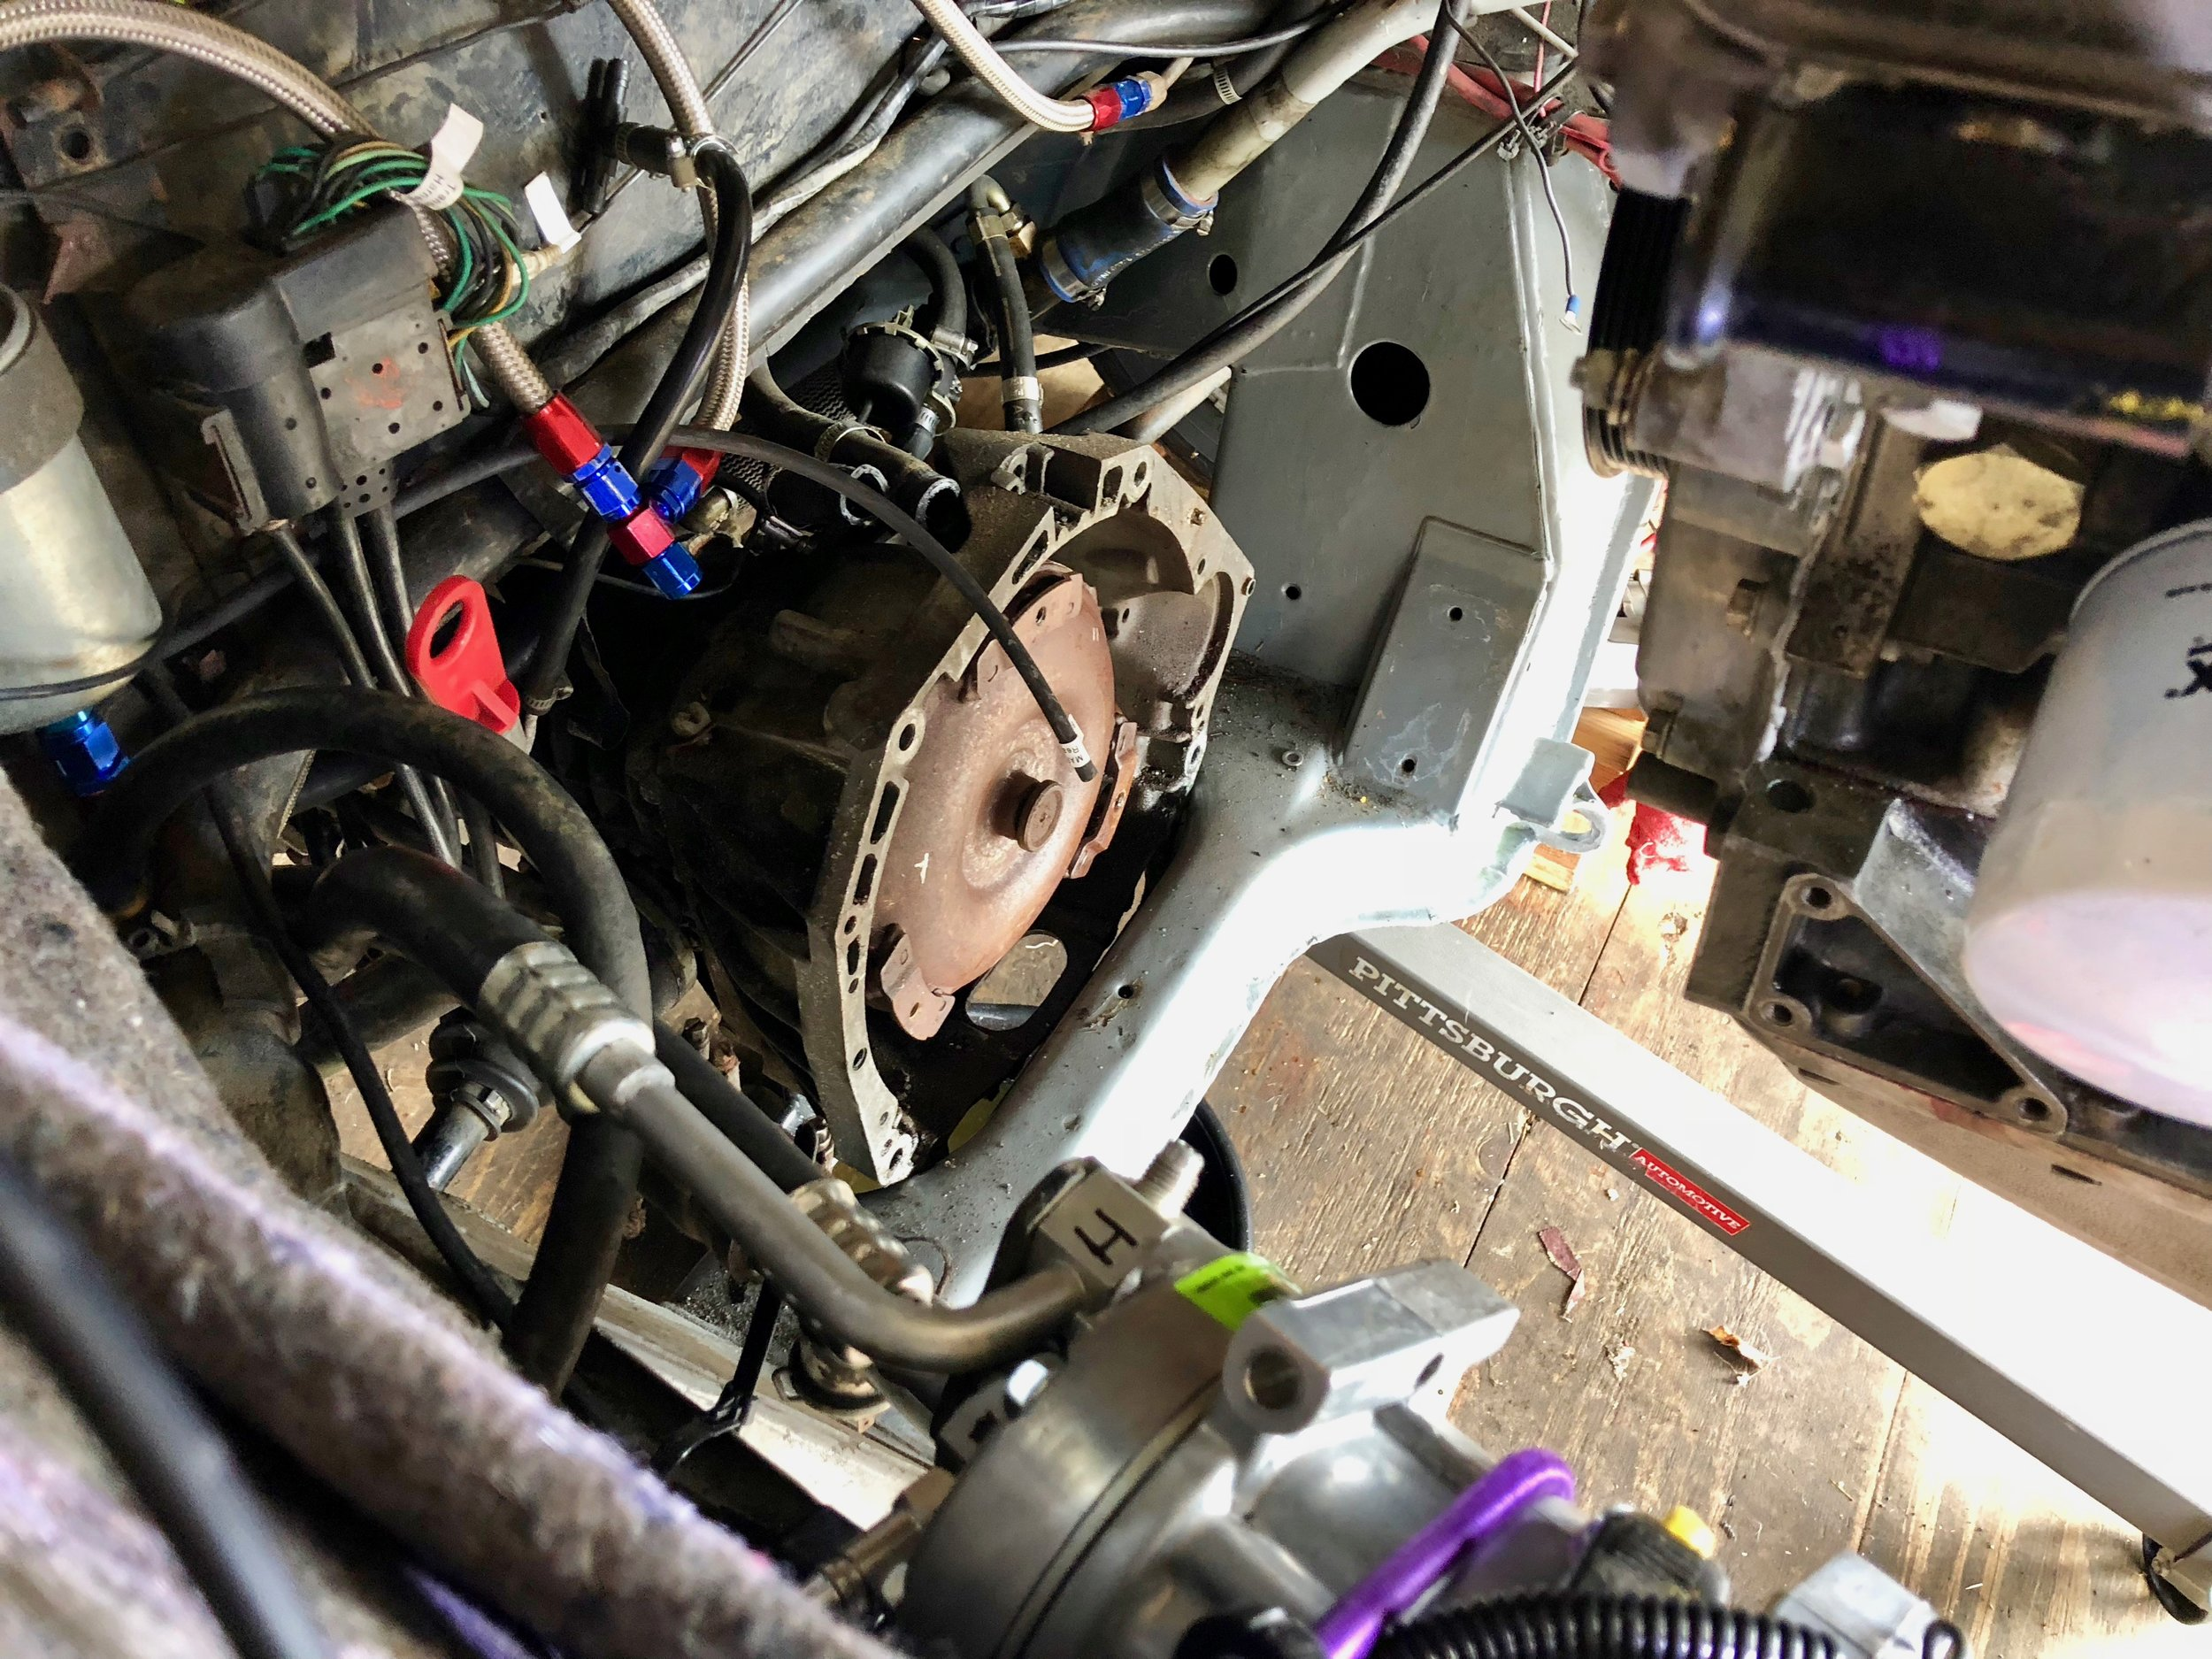 The separated transmission resting against the edge of the engine subframe.